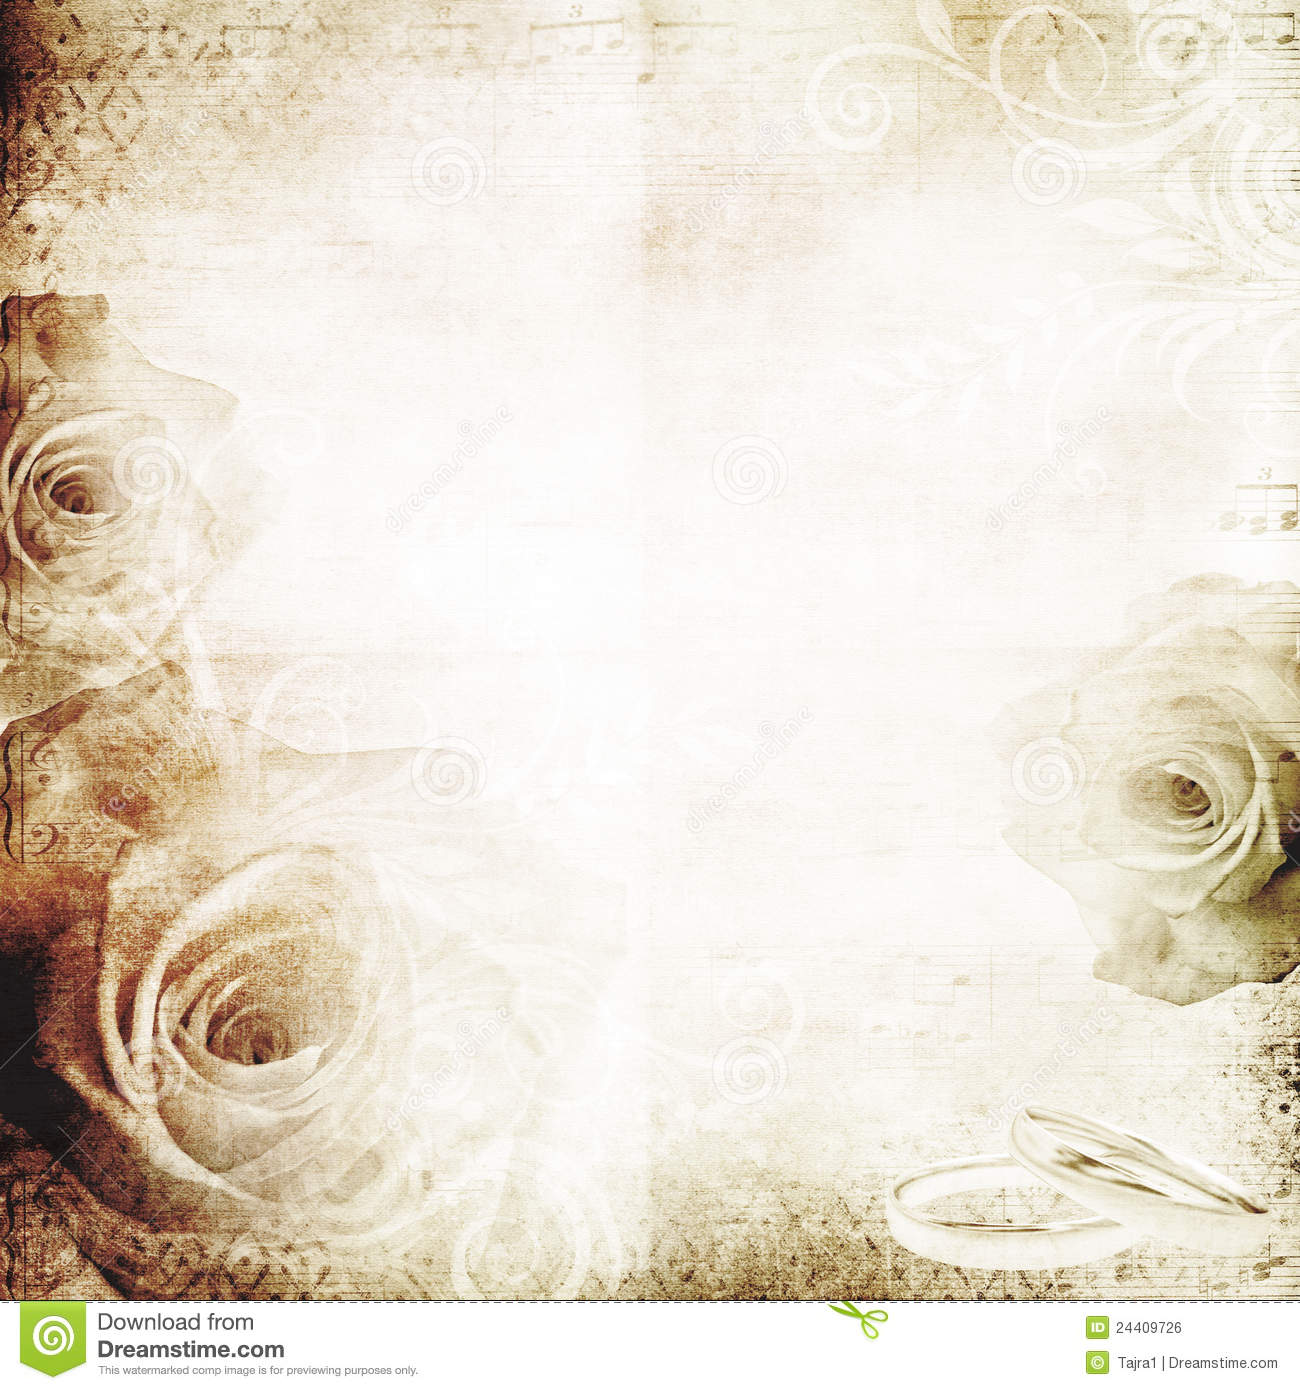 Vintage Wedding Background Royalty Free Stock Image